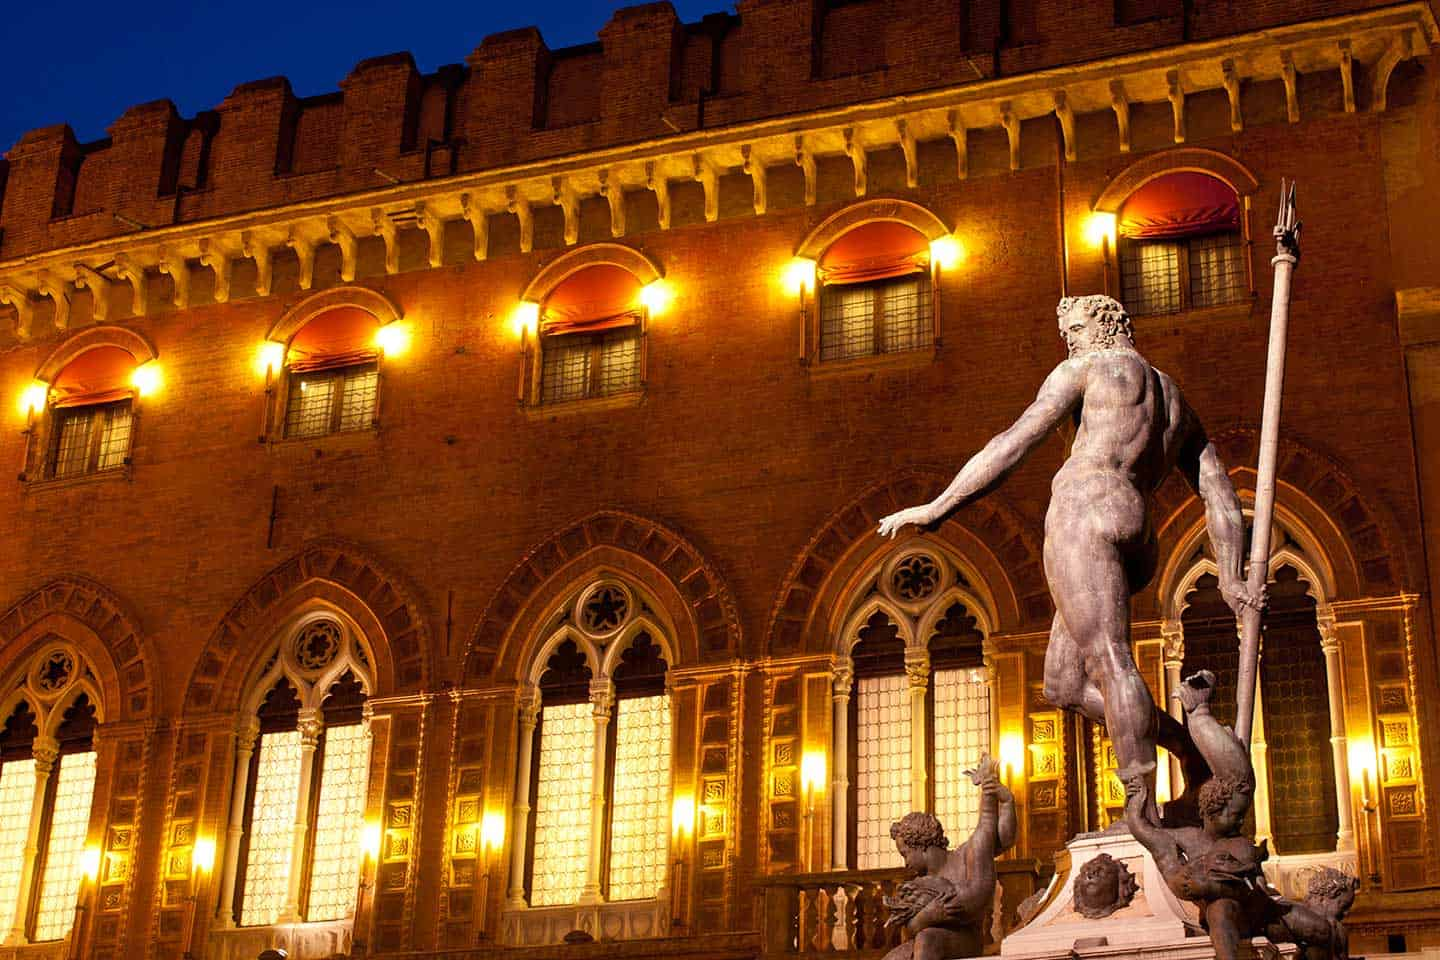 Image of Bologna's iconic statue of Neptune